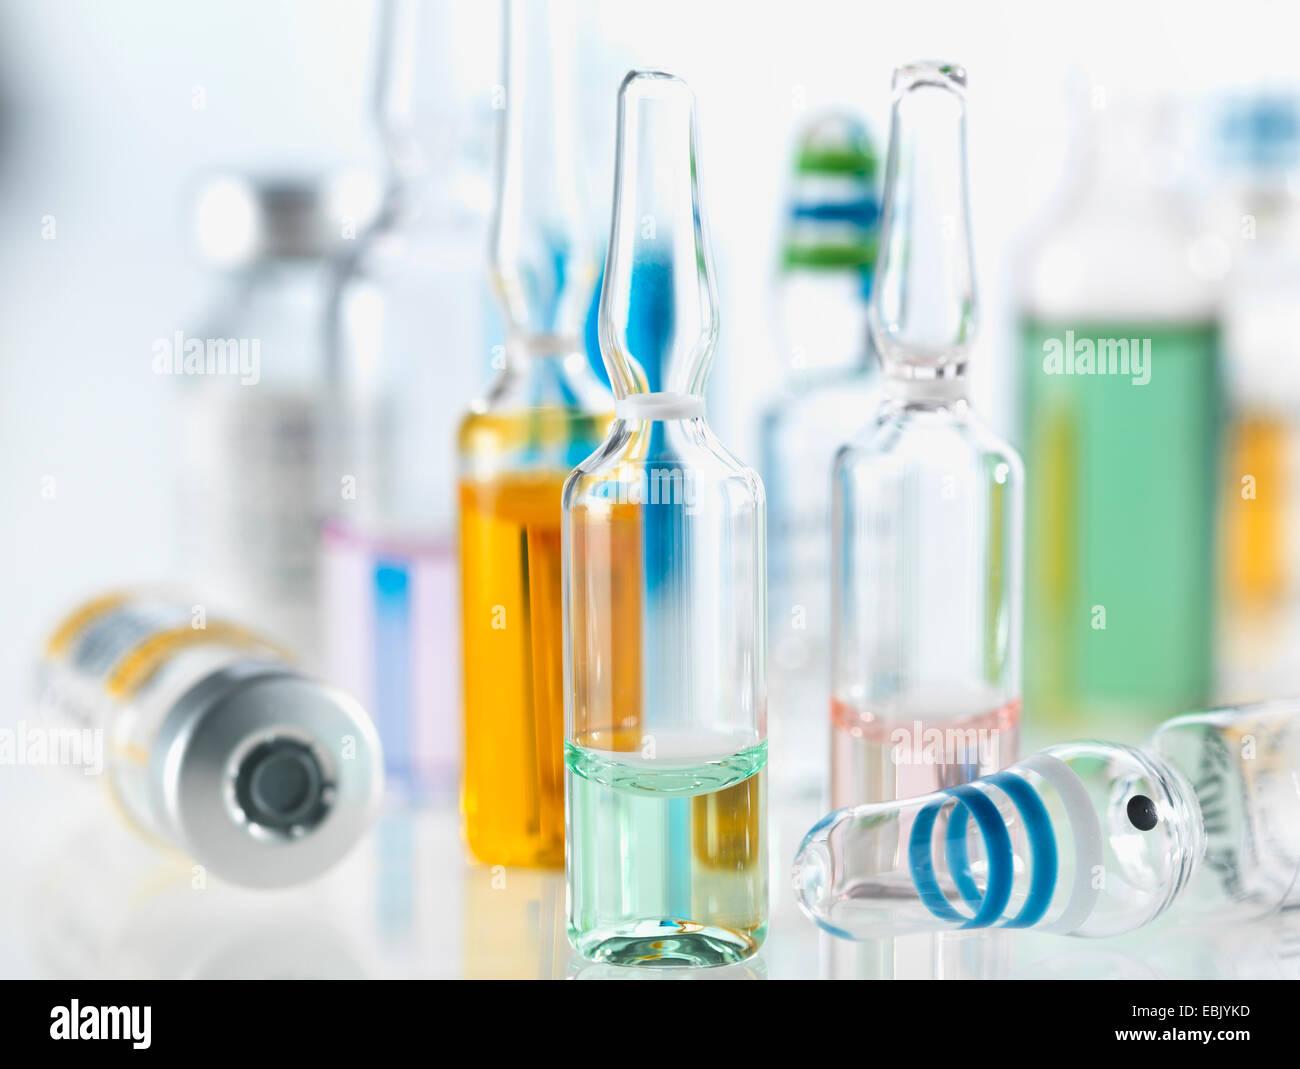 Variety of drugs including vials, ampules and vaccines illustrating medical research - Stock Image